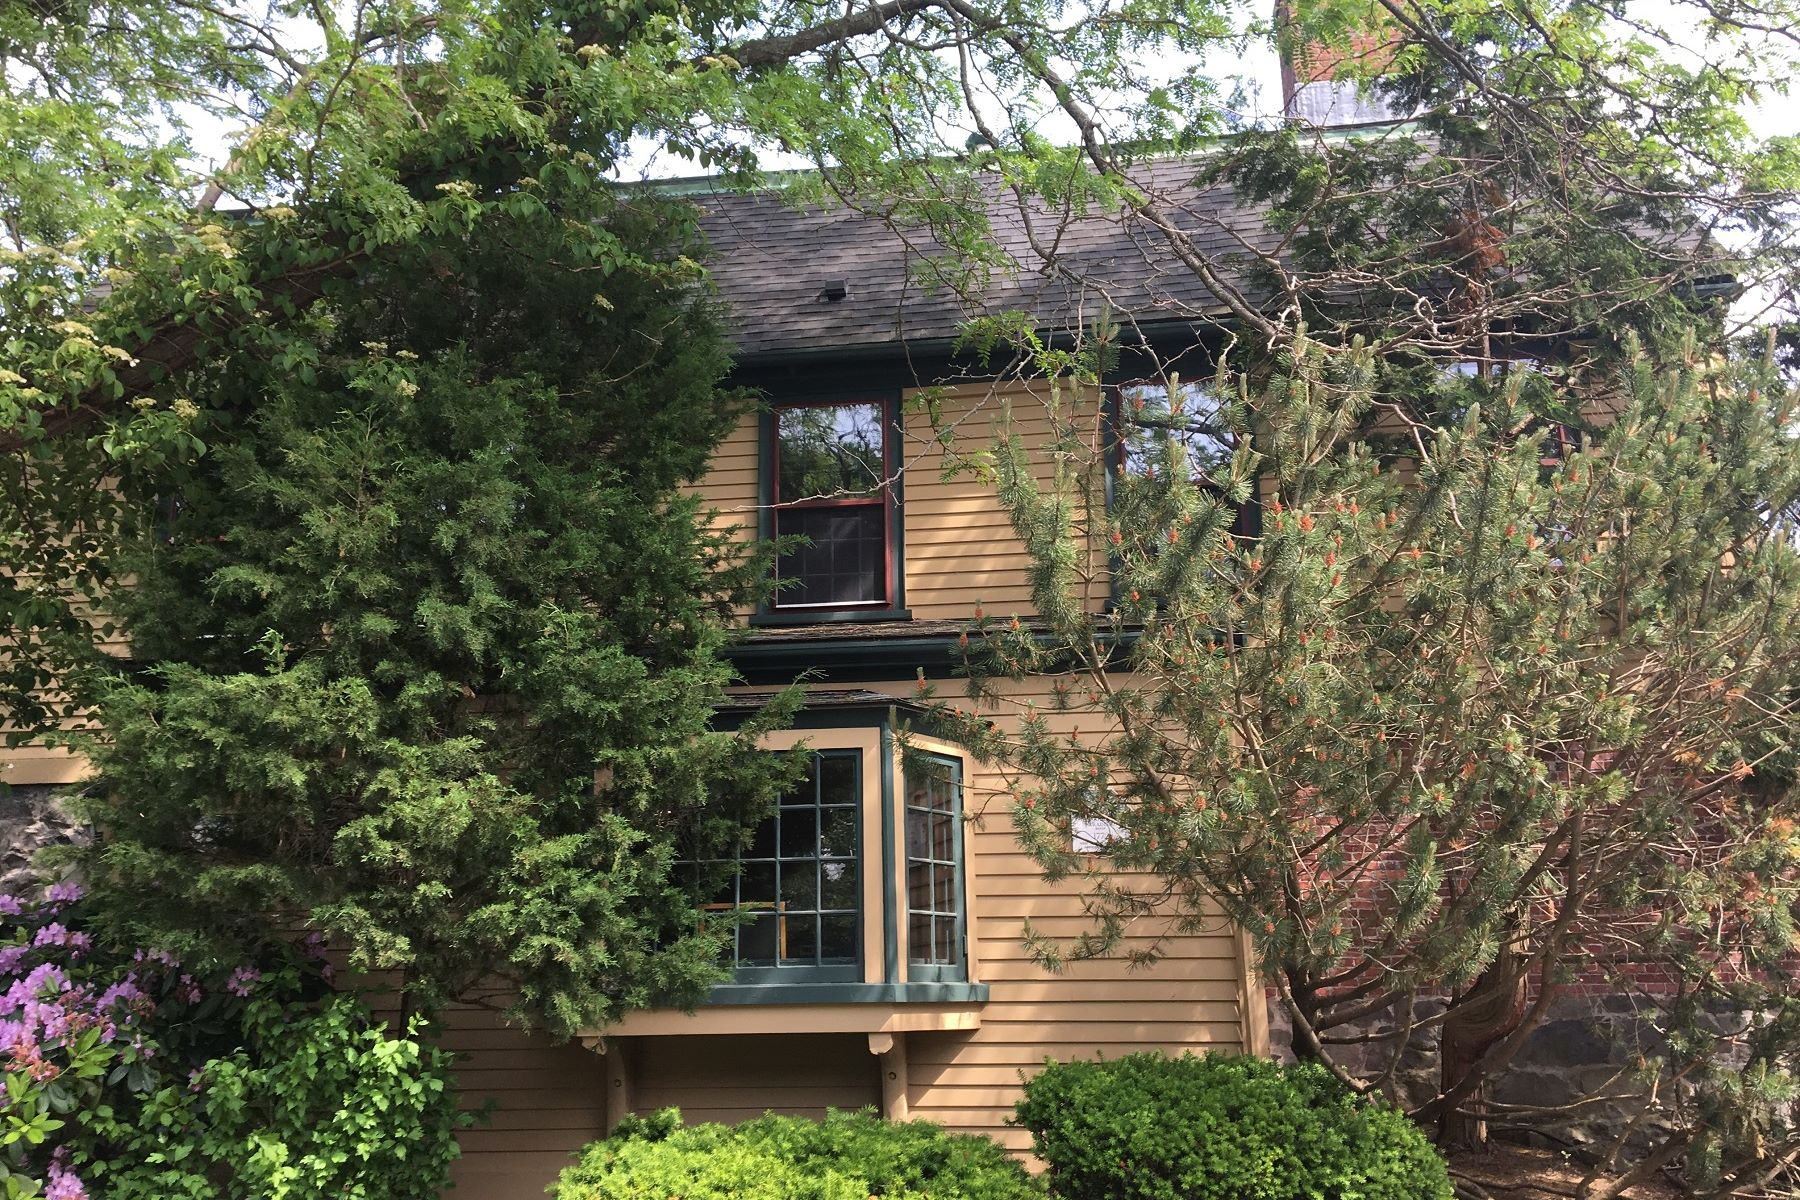 Single Family Home for Sale at Impressive Museum Quality Antique 9 Merritt Street Marblehead, Massachusetts 01945 United States